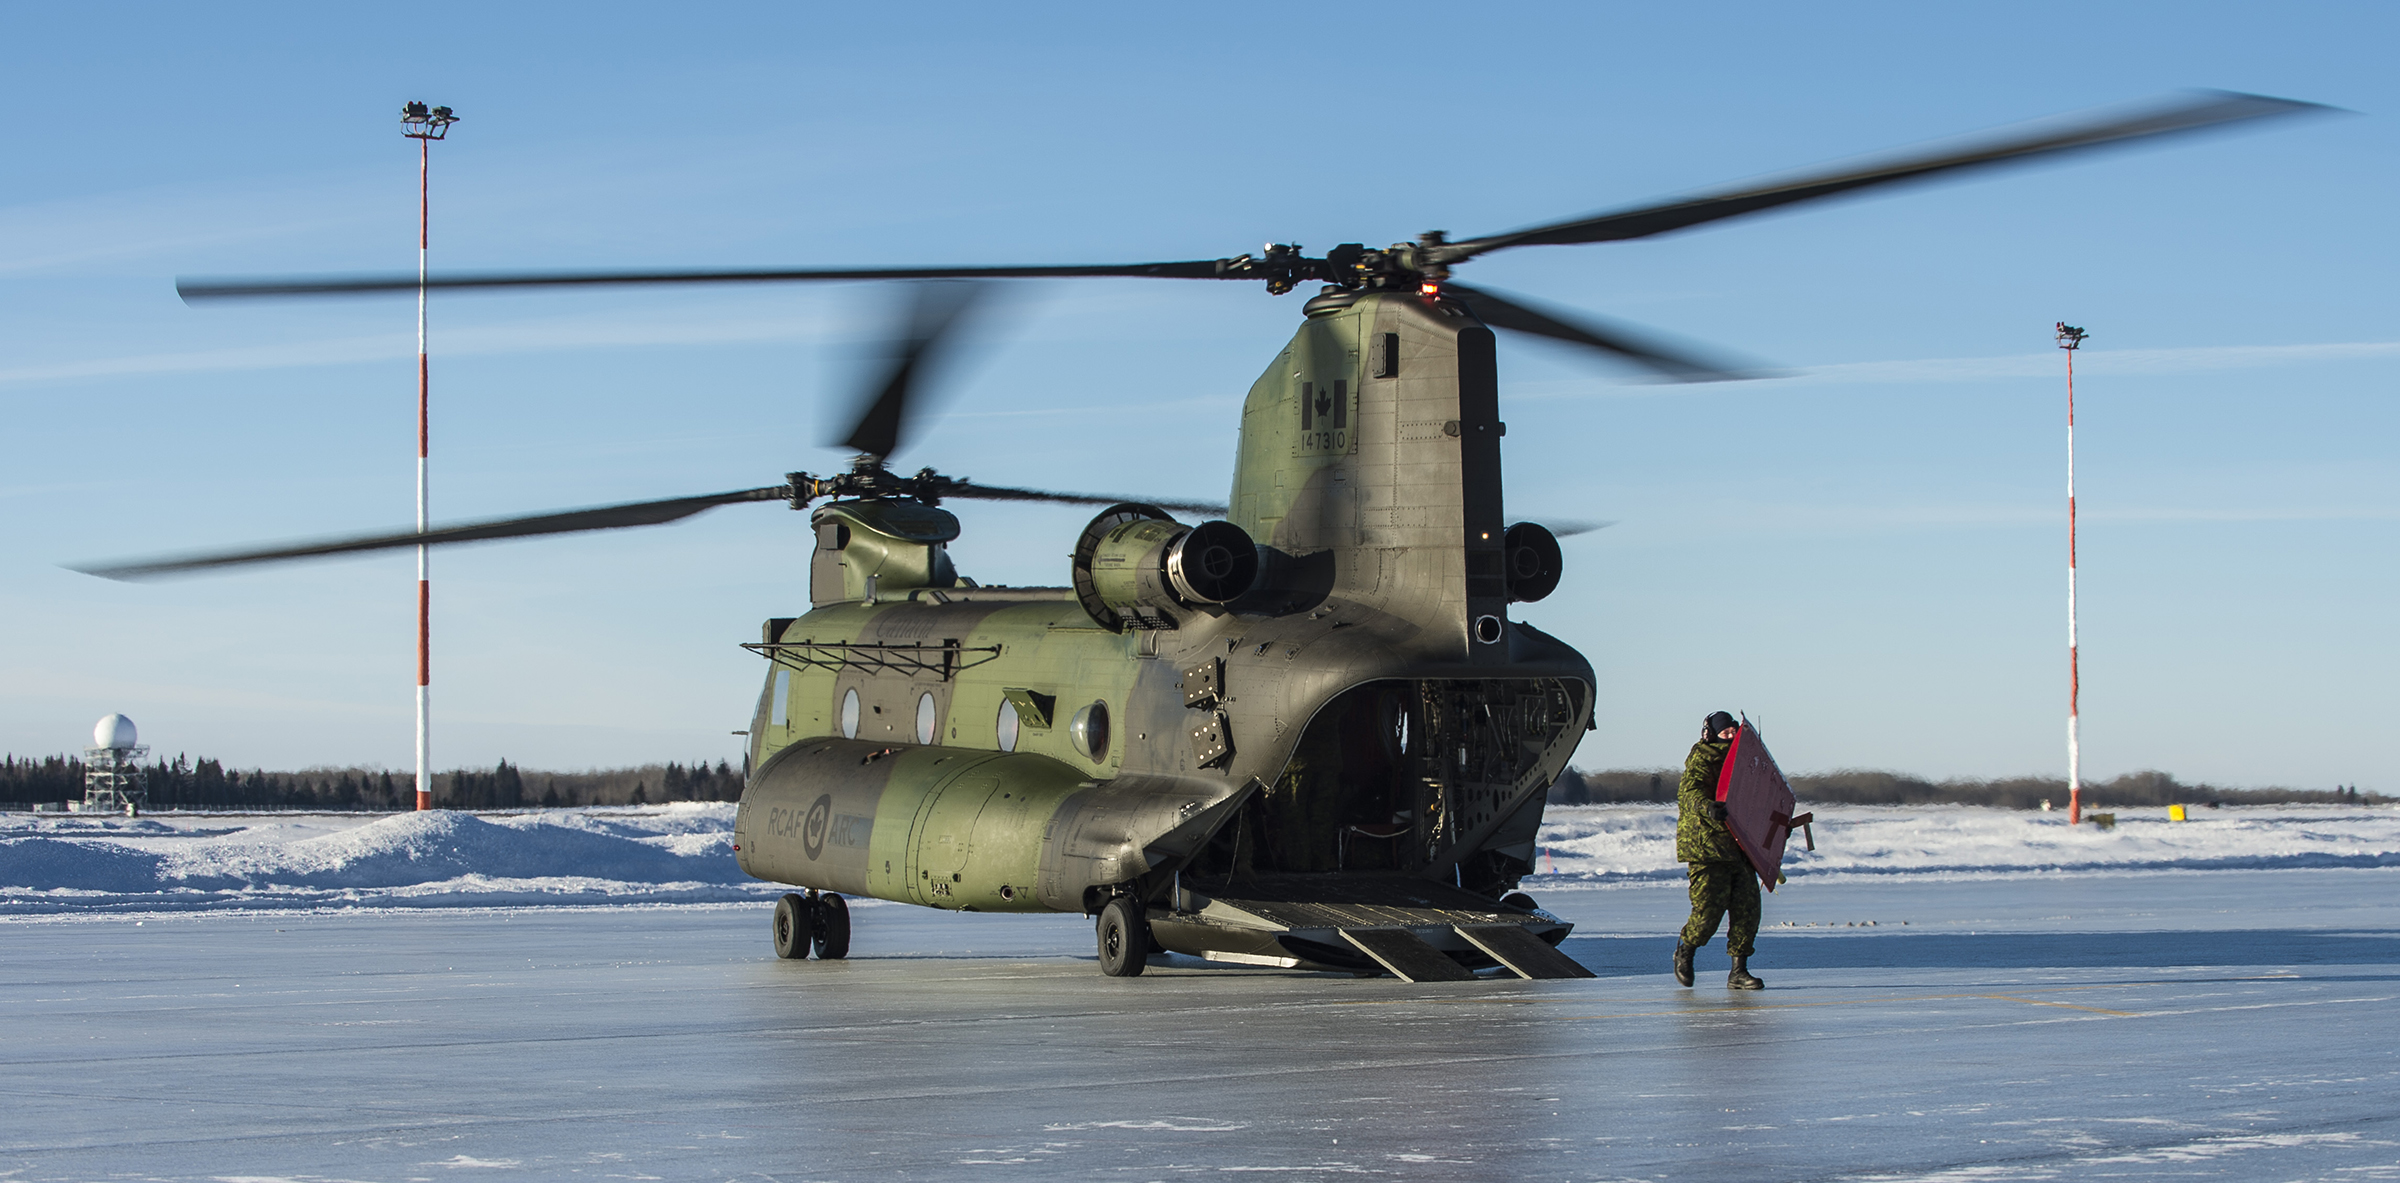 Personnel from 417 Combat Support Squadron unload parts of a damaged CH-146 Griffon from a CH-147F Chinook helicopter on January 15, 2019, at 4 Wing Cold Lake, Alberta. Later in the day, the Chinook successfully airlifted the Griffon from a remote area of the Cold Lake Air Weapons Range back to the wing. PHOTO: Able Seaman Mathieu Potvin, AE02-2019-0011-002